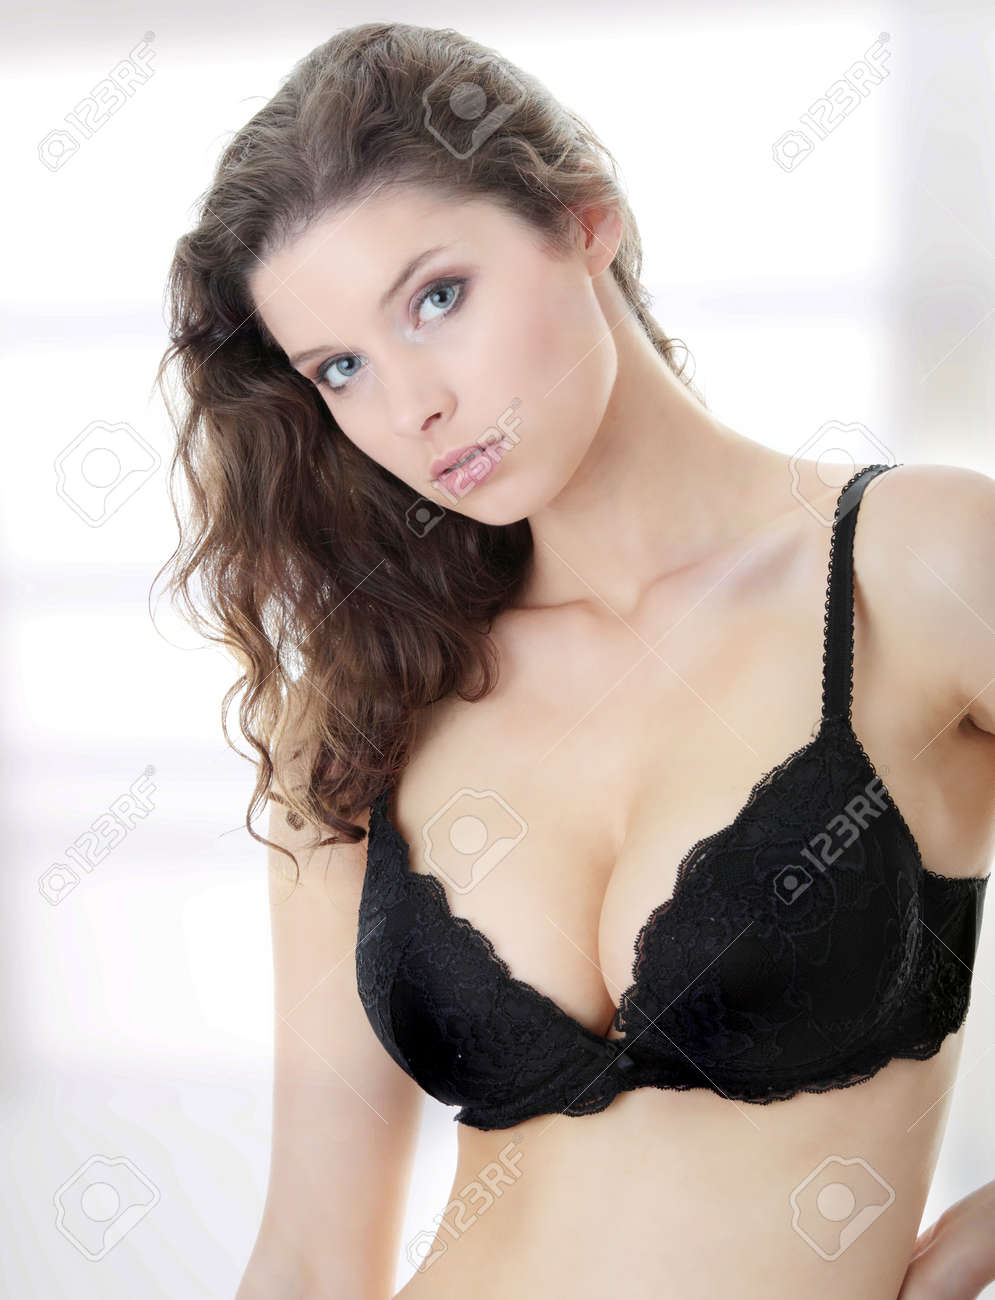 CHERIE: Busty bra lady model